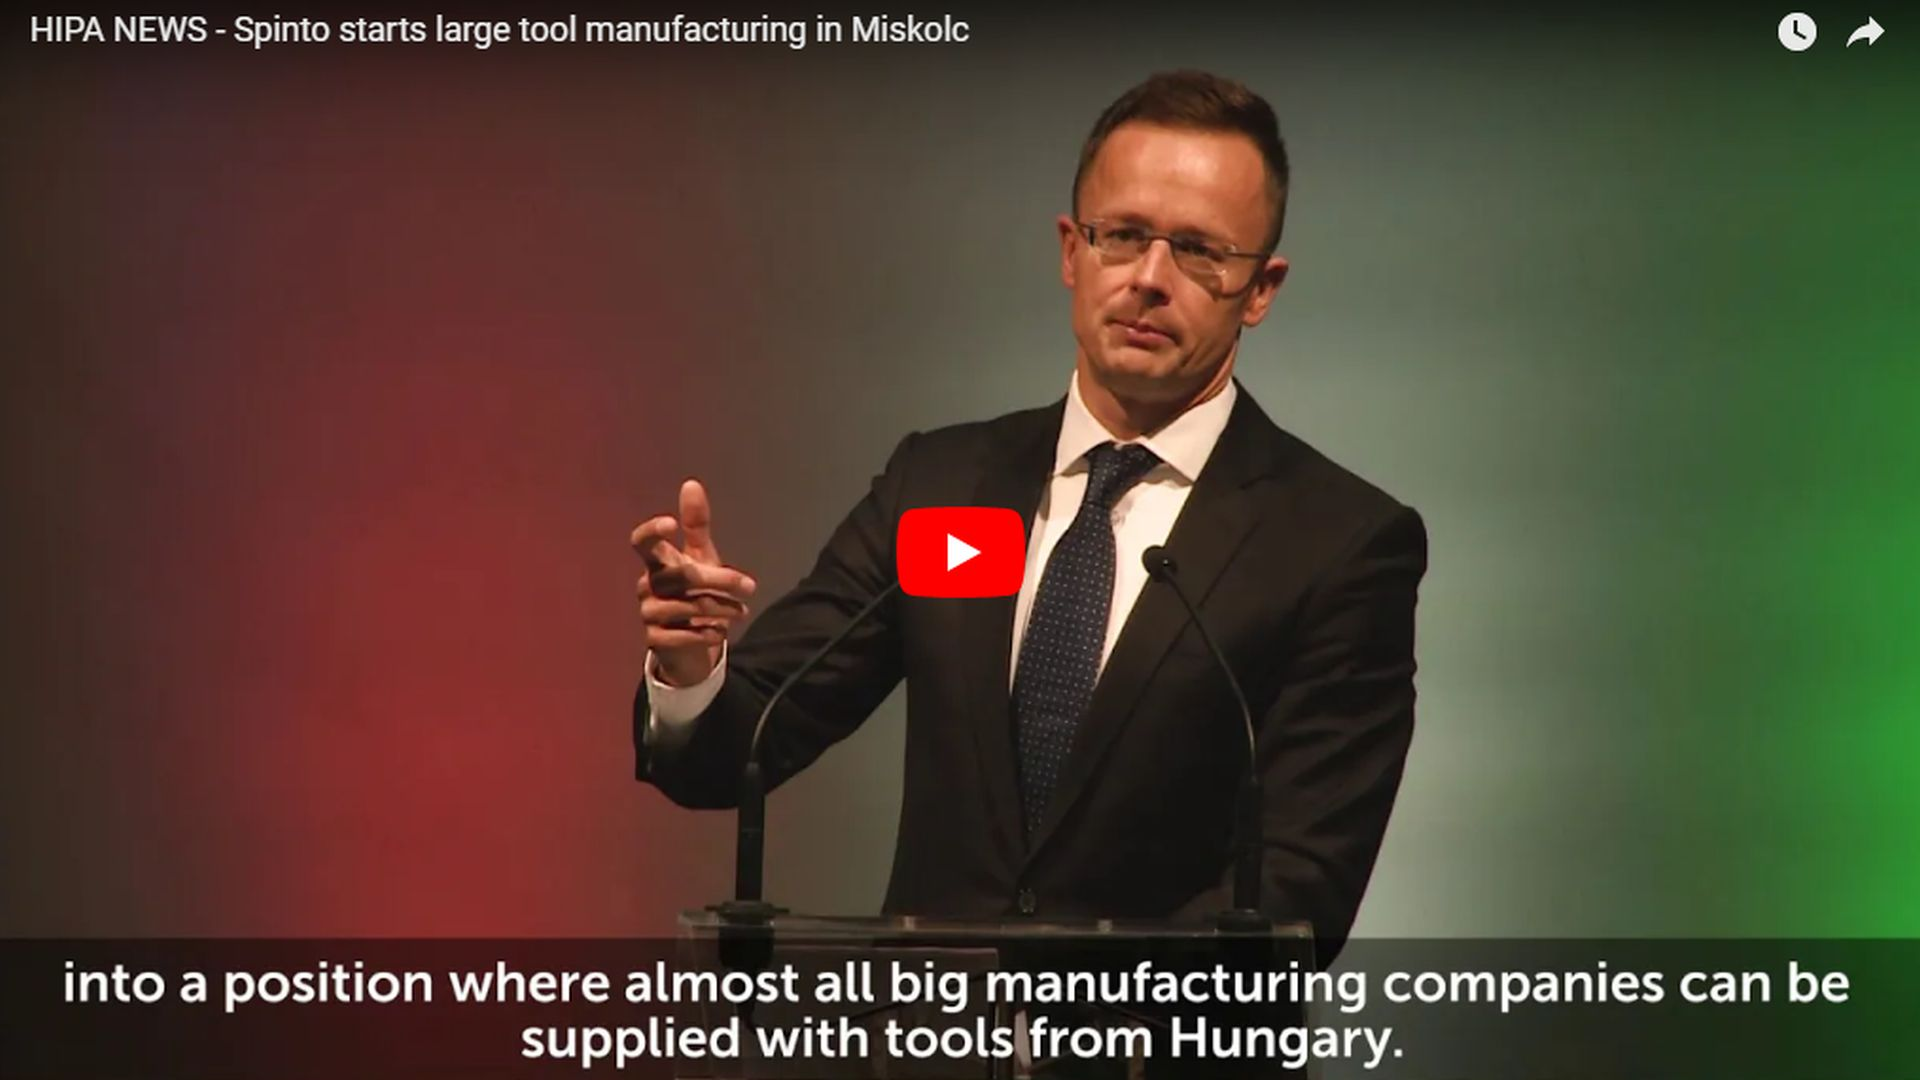 Production started in the regionally important tool factory in Miskolc - VIDEO REPORT